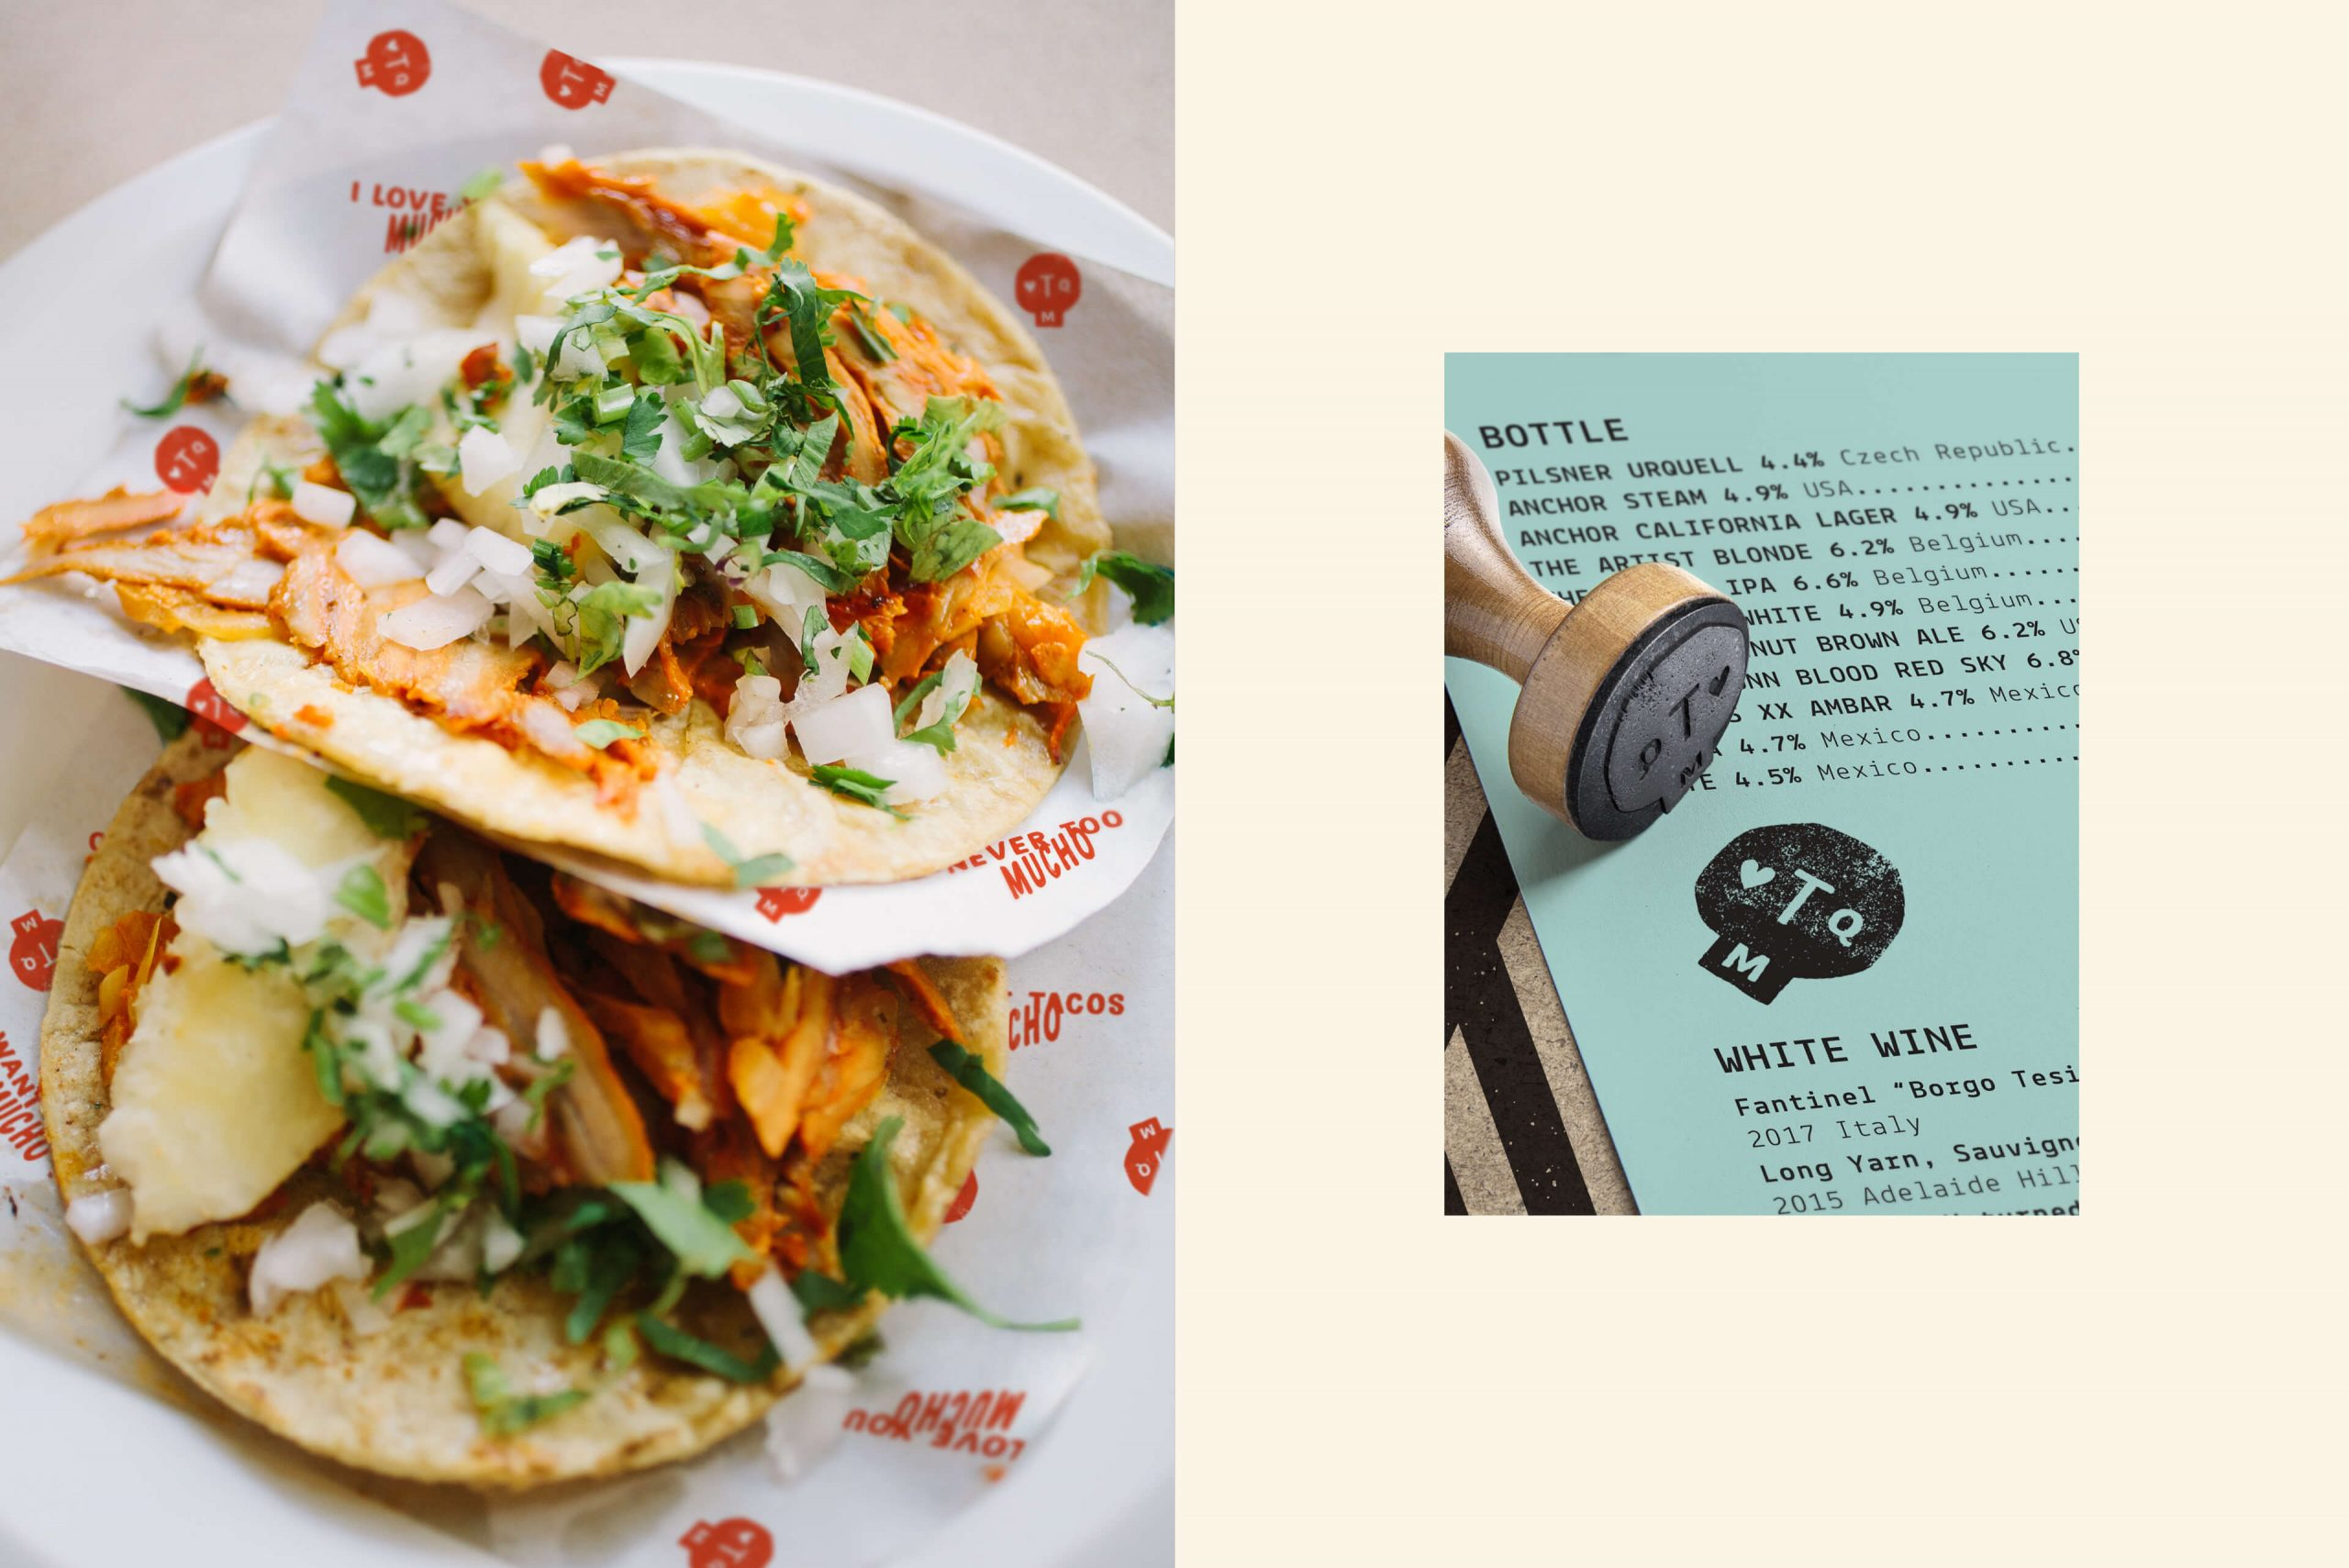 Ovolo Te Quiero Mucho Hospitality Identity - Taco photograph with branded rubber stamp